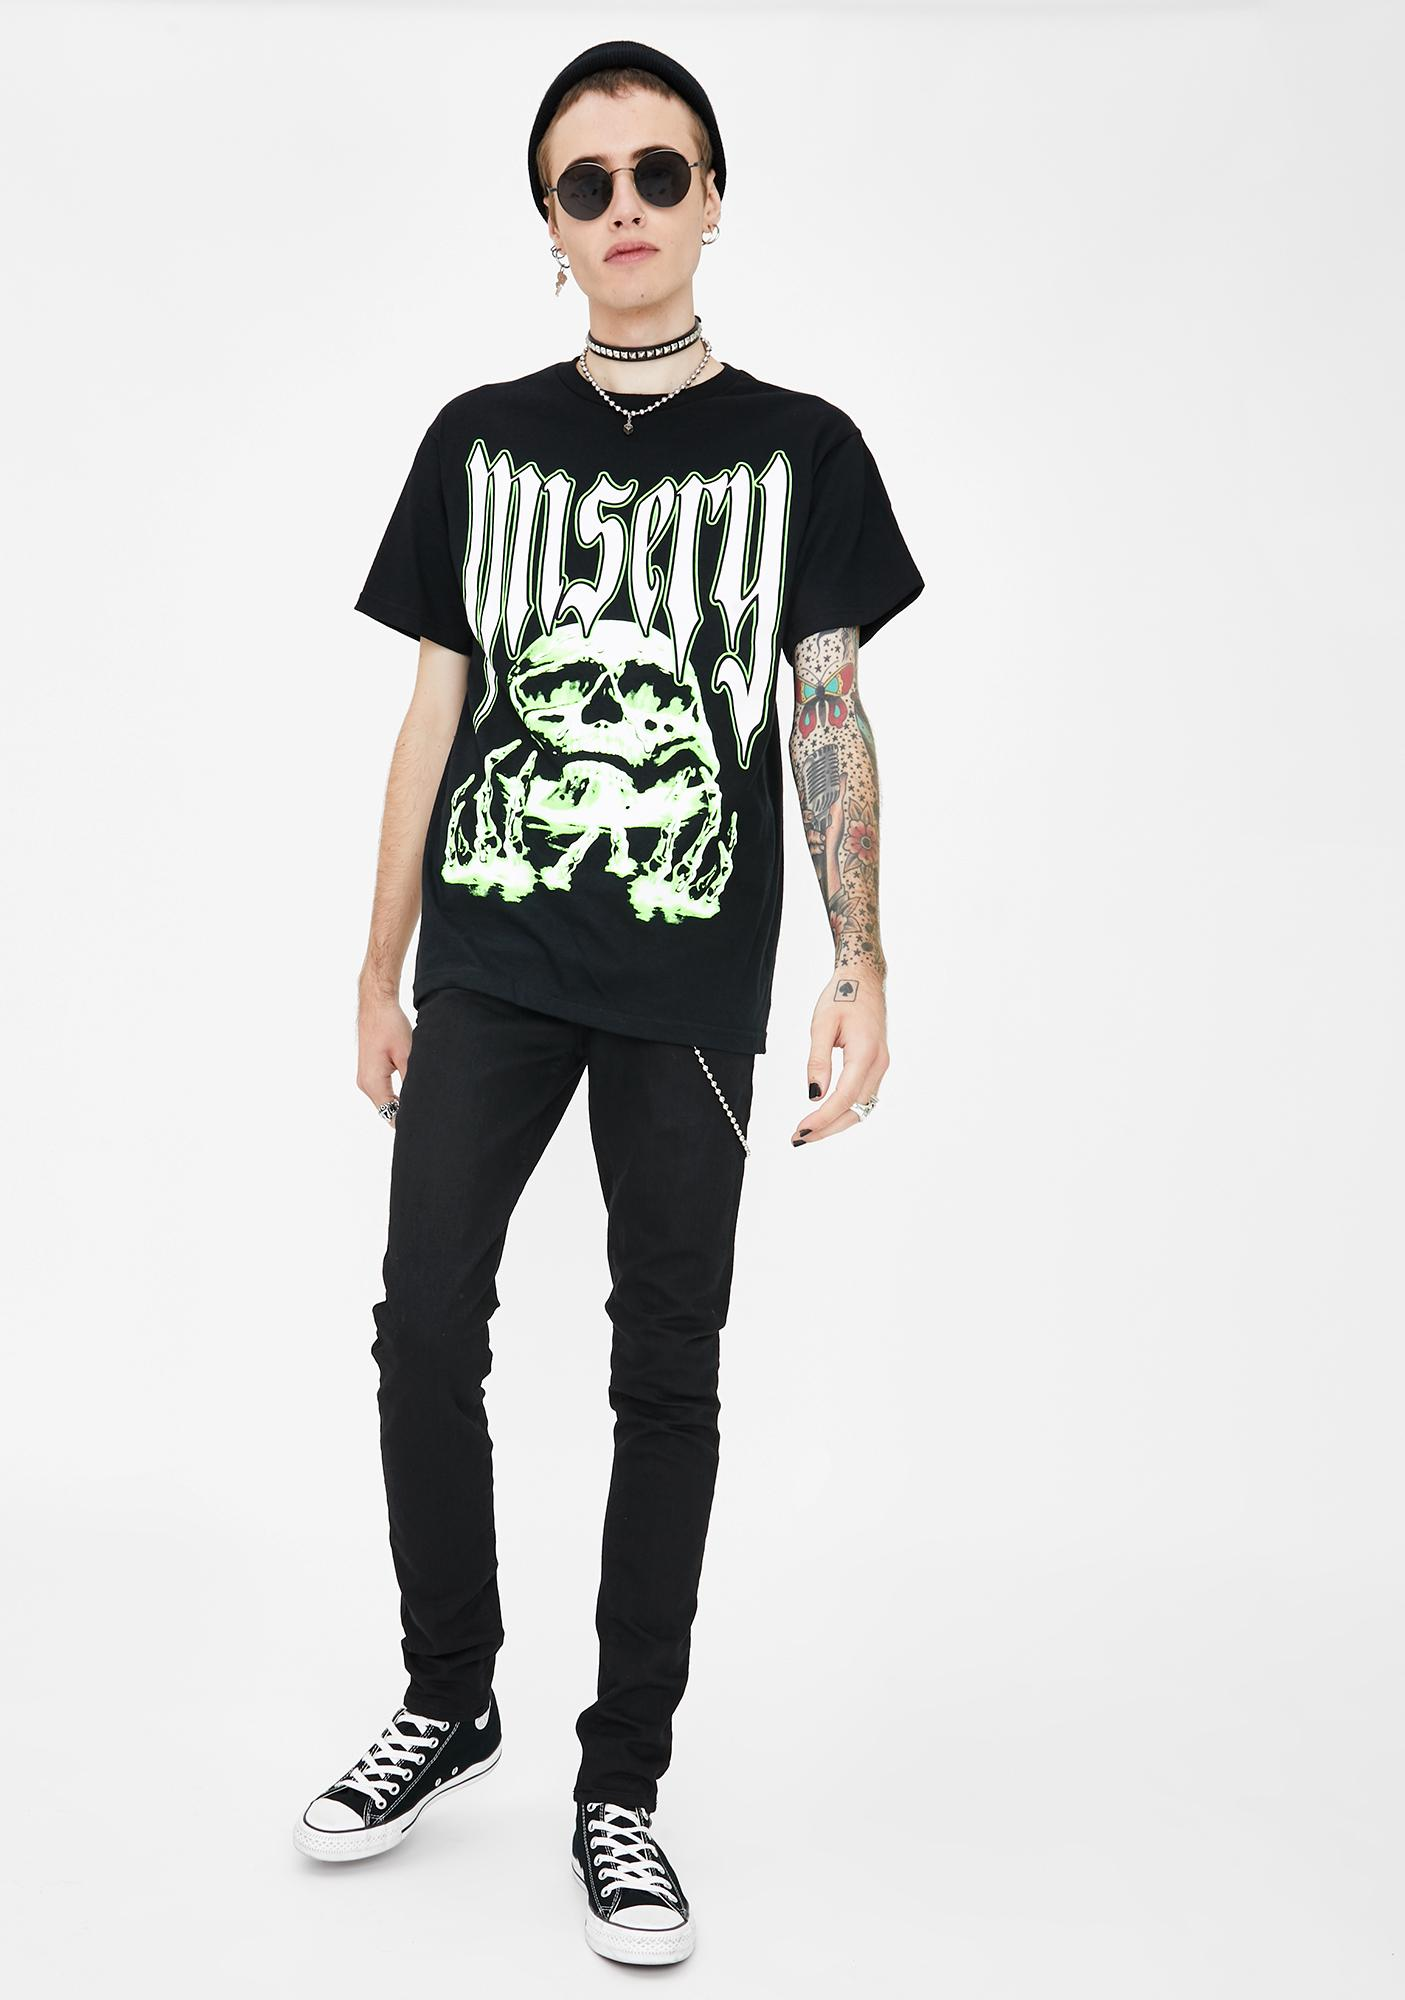 Misery Worldwide Generation Graphic Tee